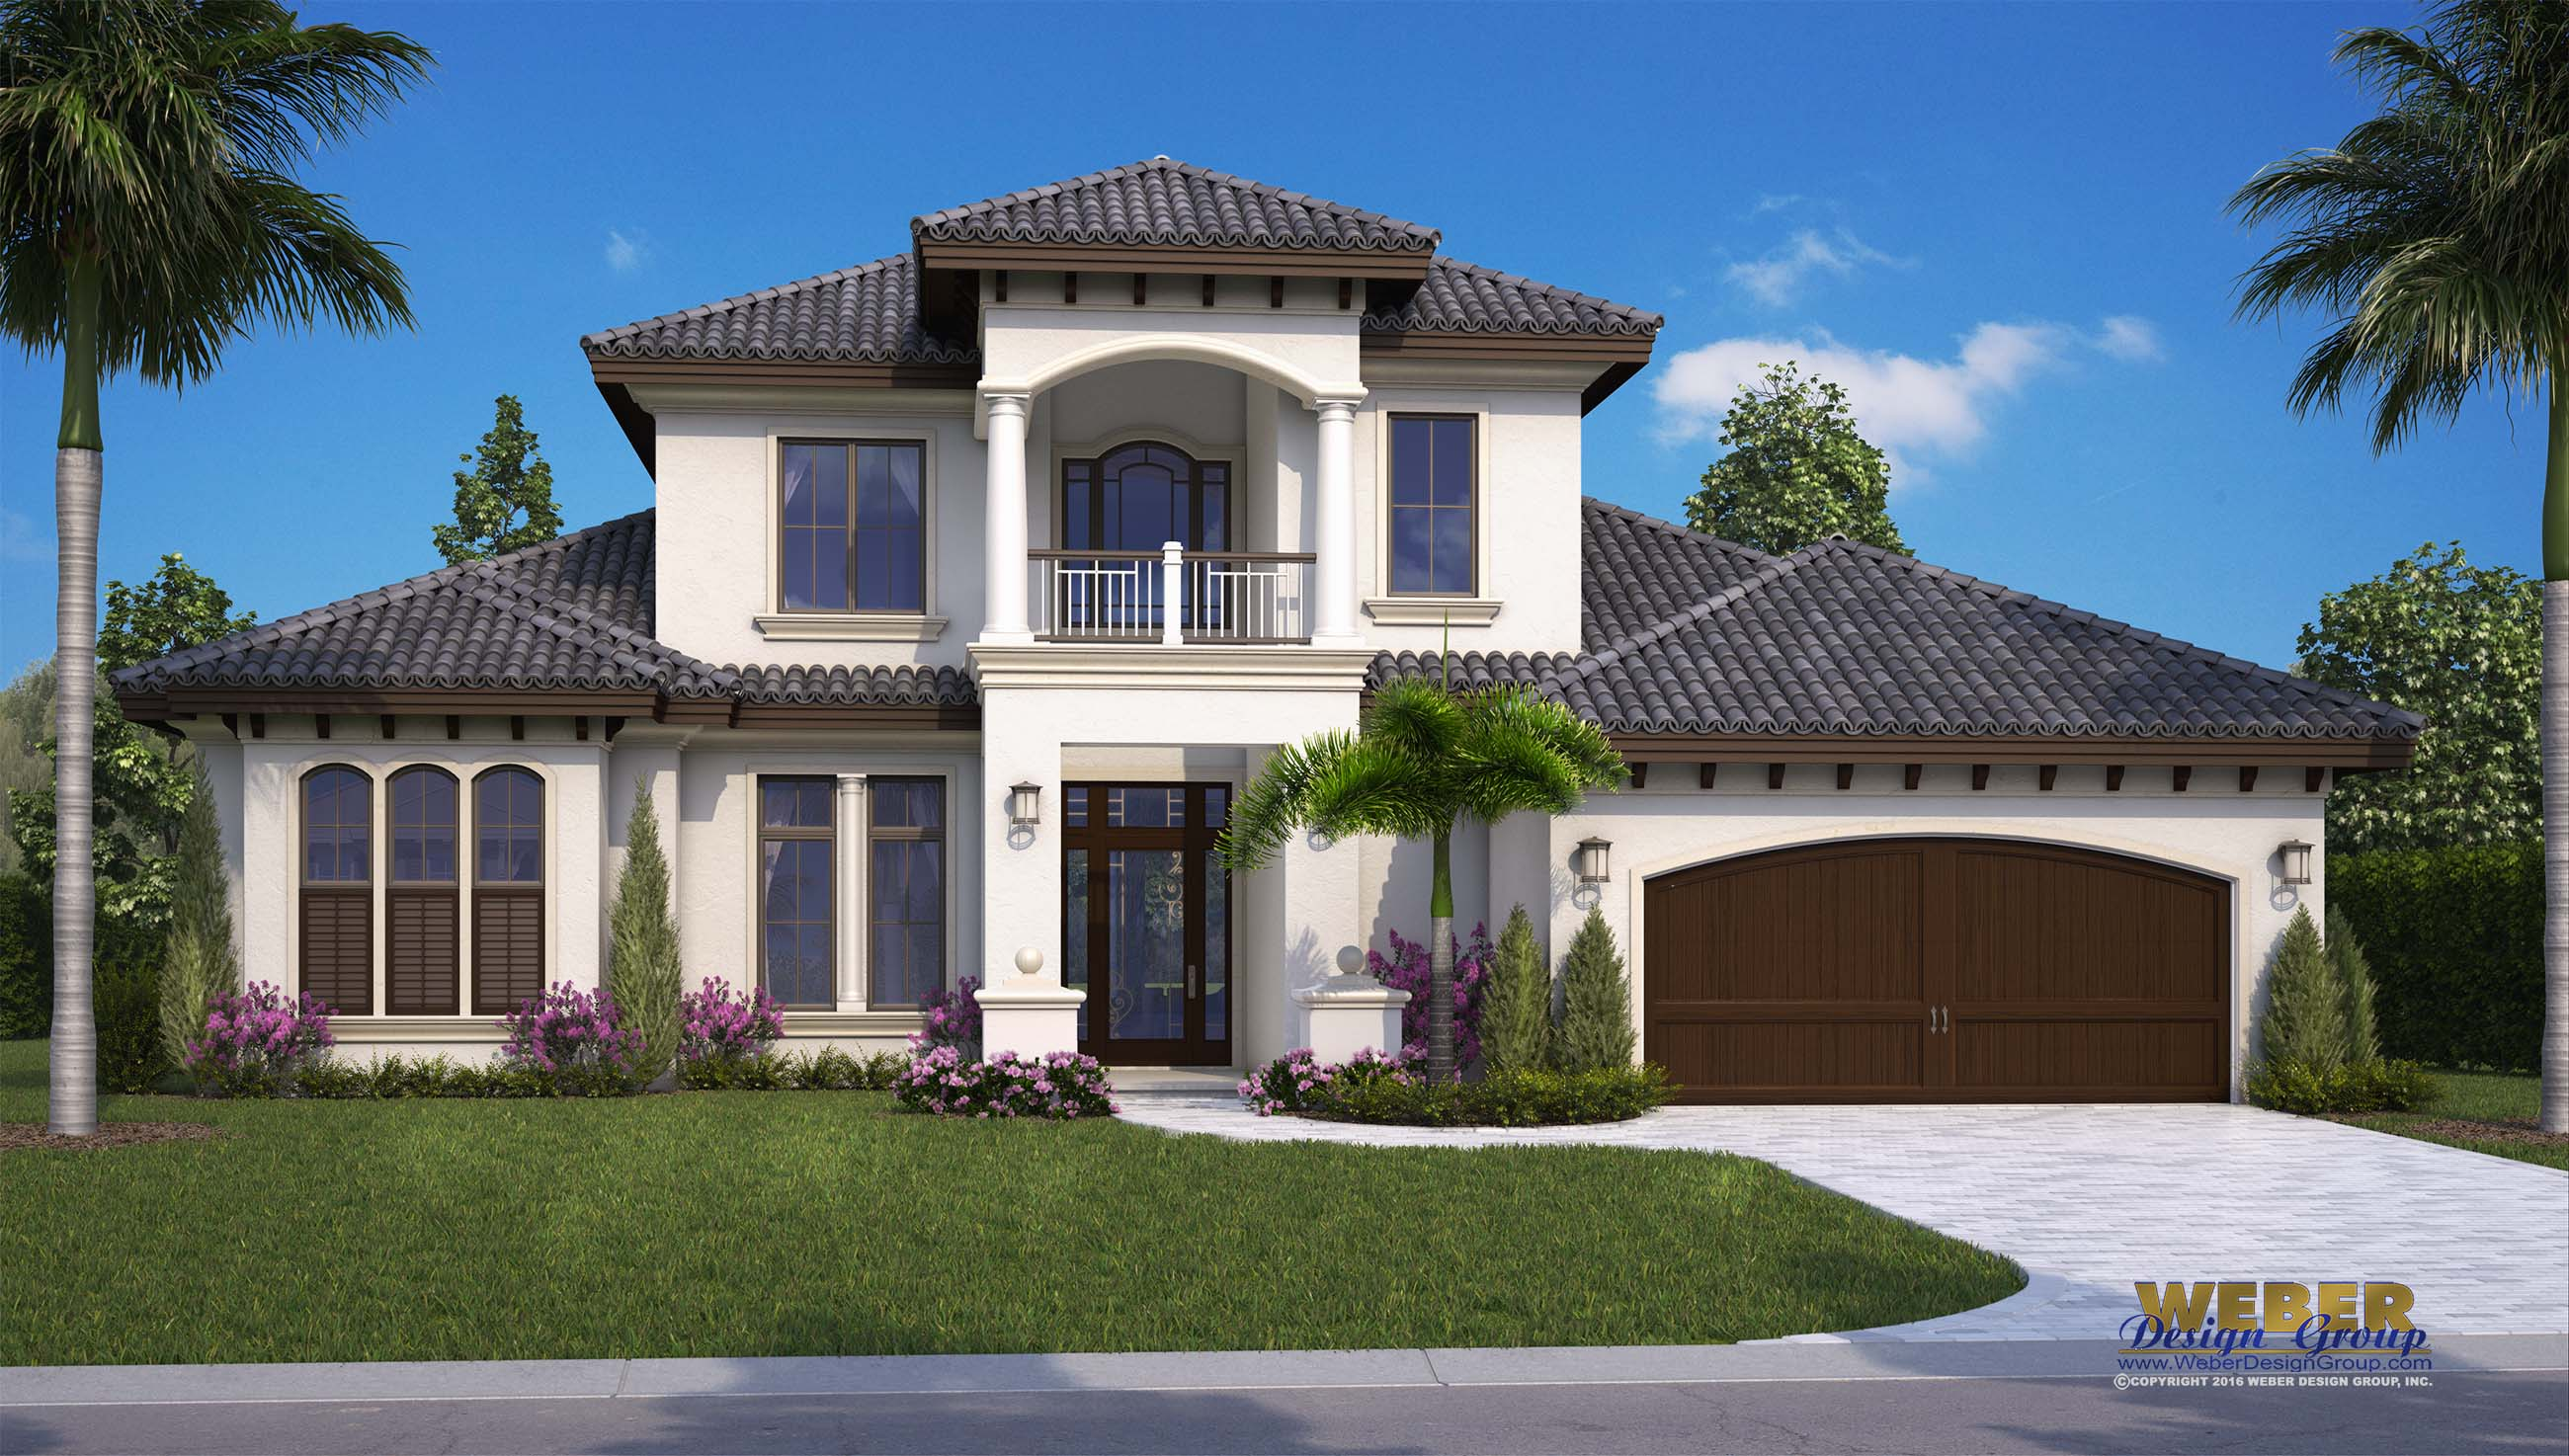 Mediterranean house plan the via fontana house plan for Two story florida house plans